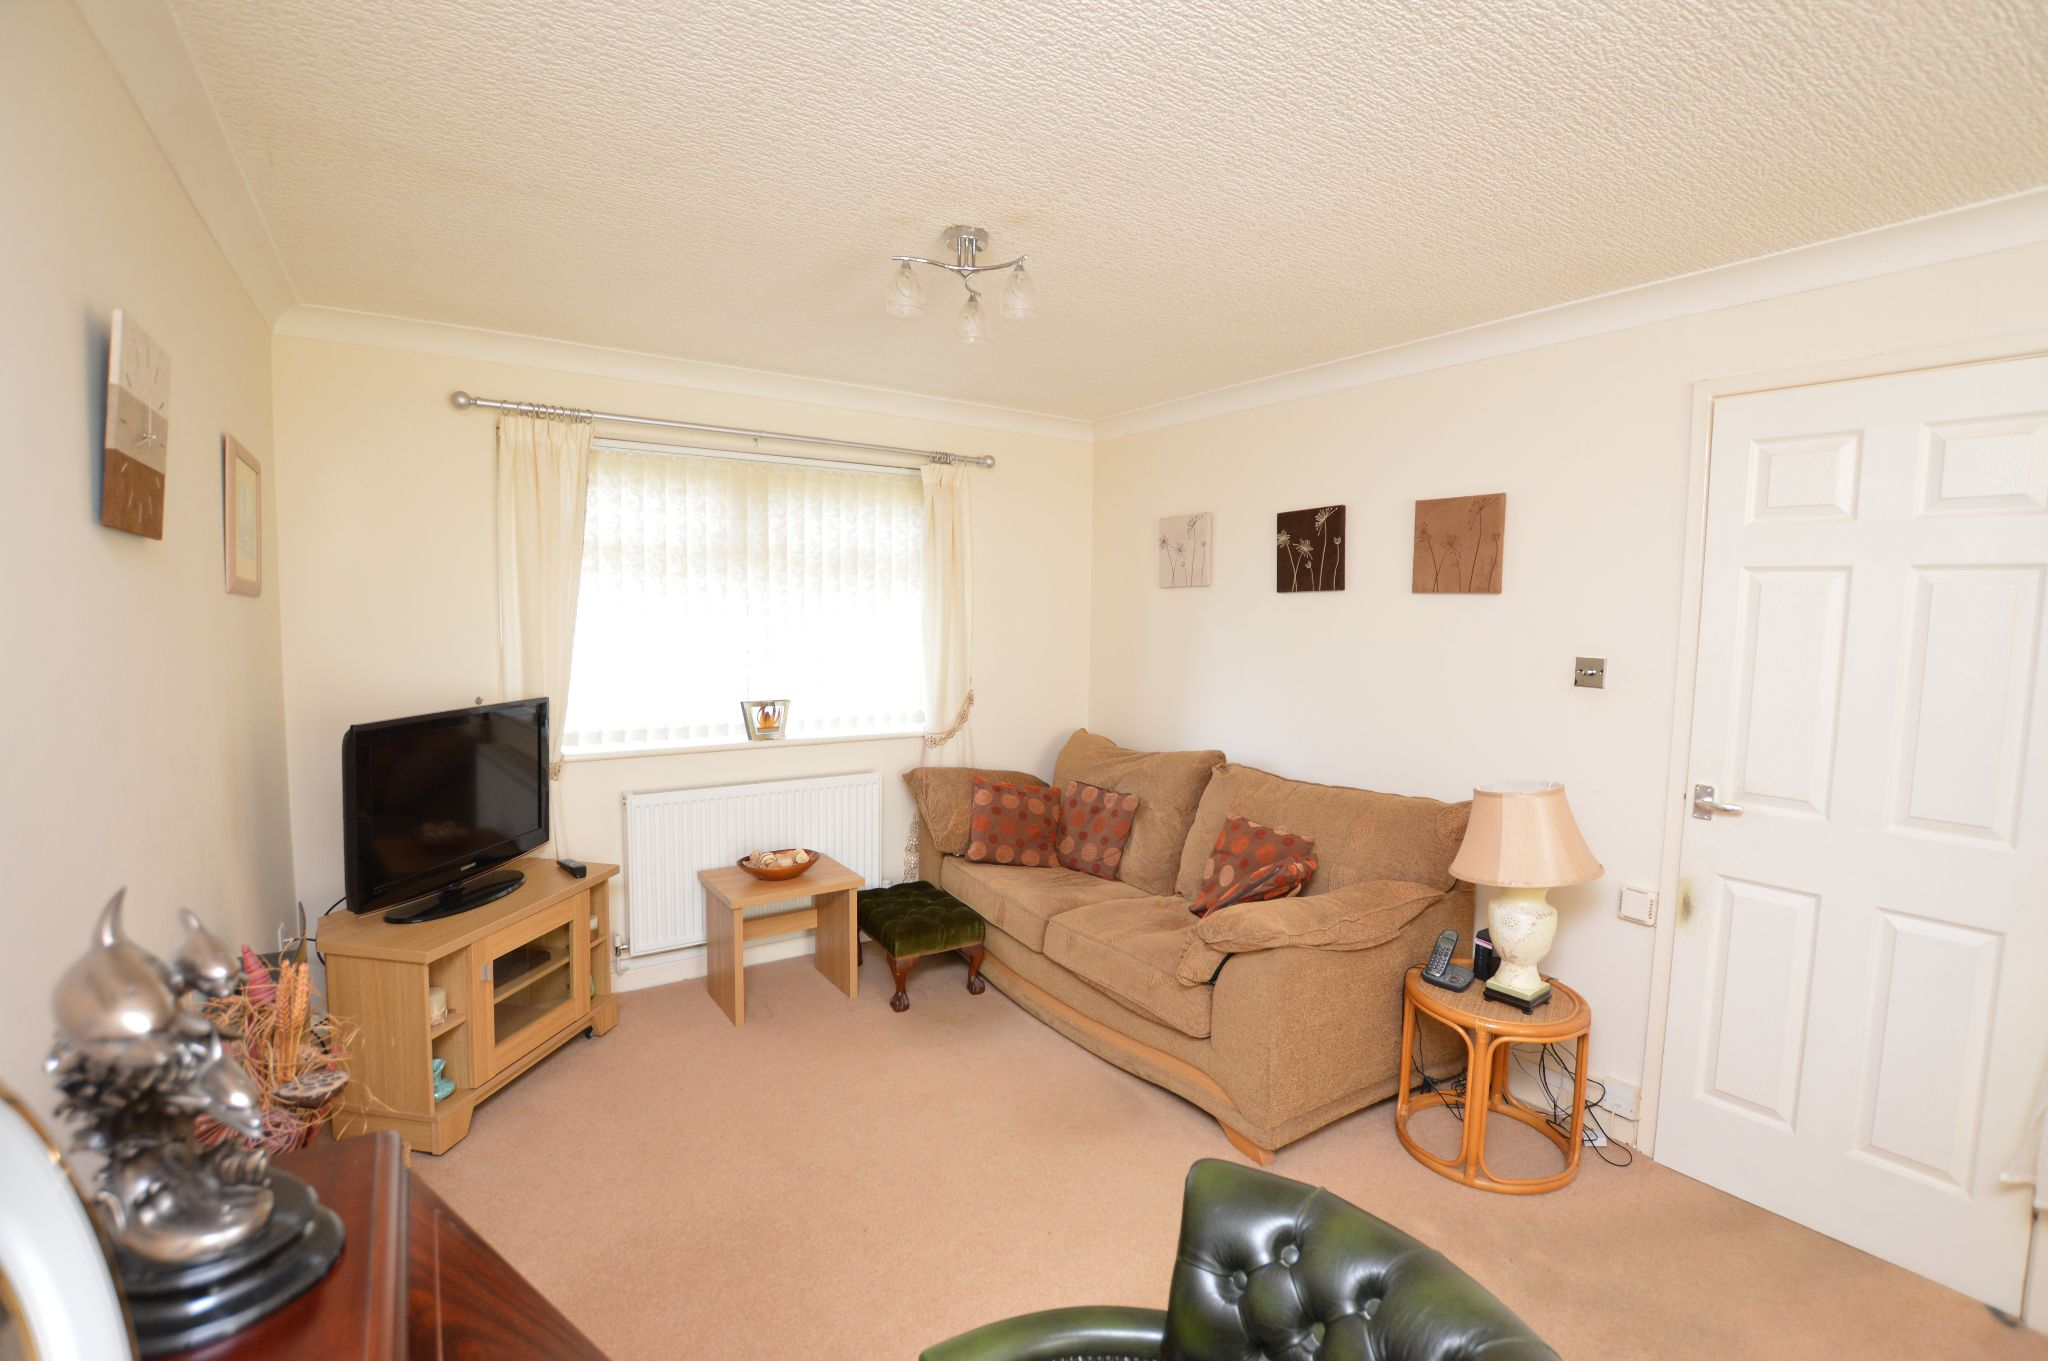 1 bedroom maisonette flat/apartment Under Offer in Abergele - Lounge View 2